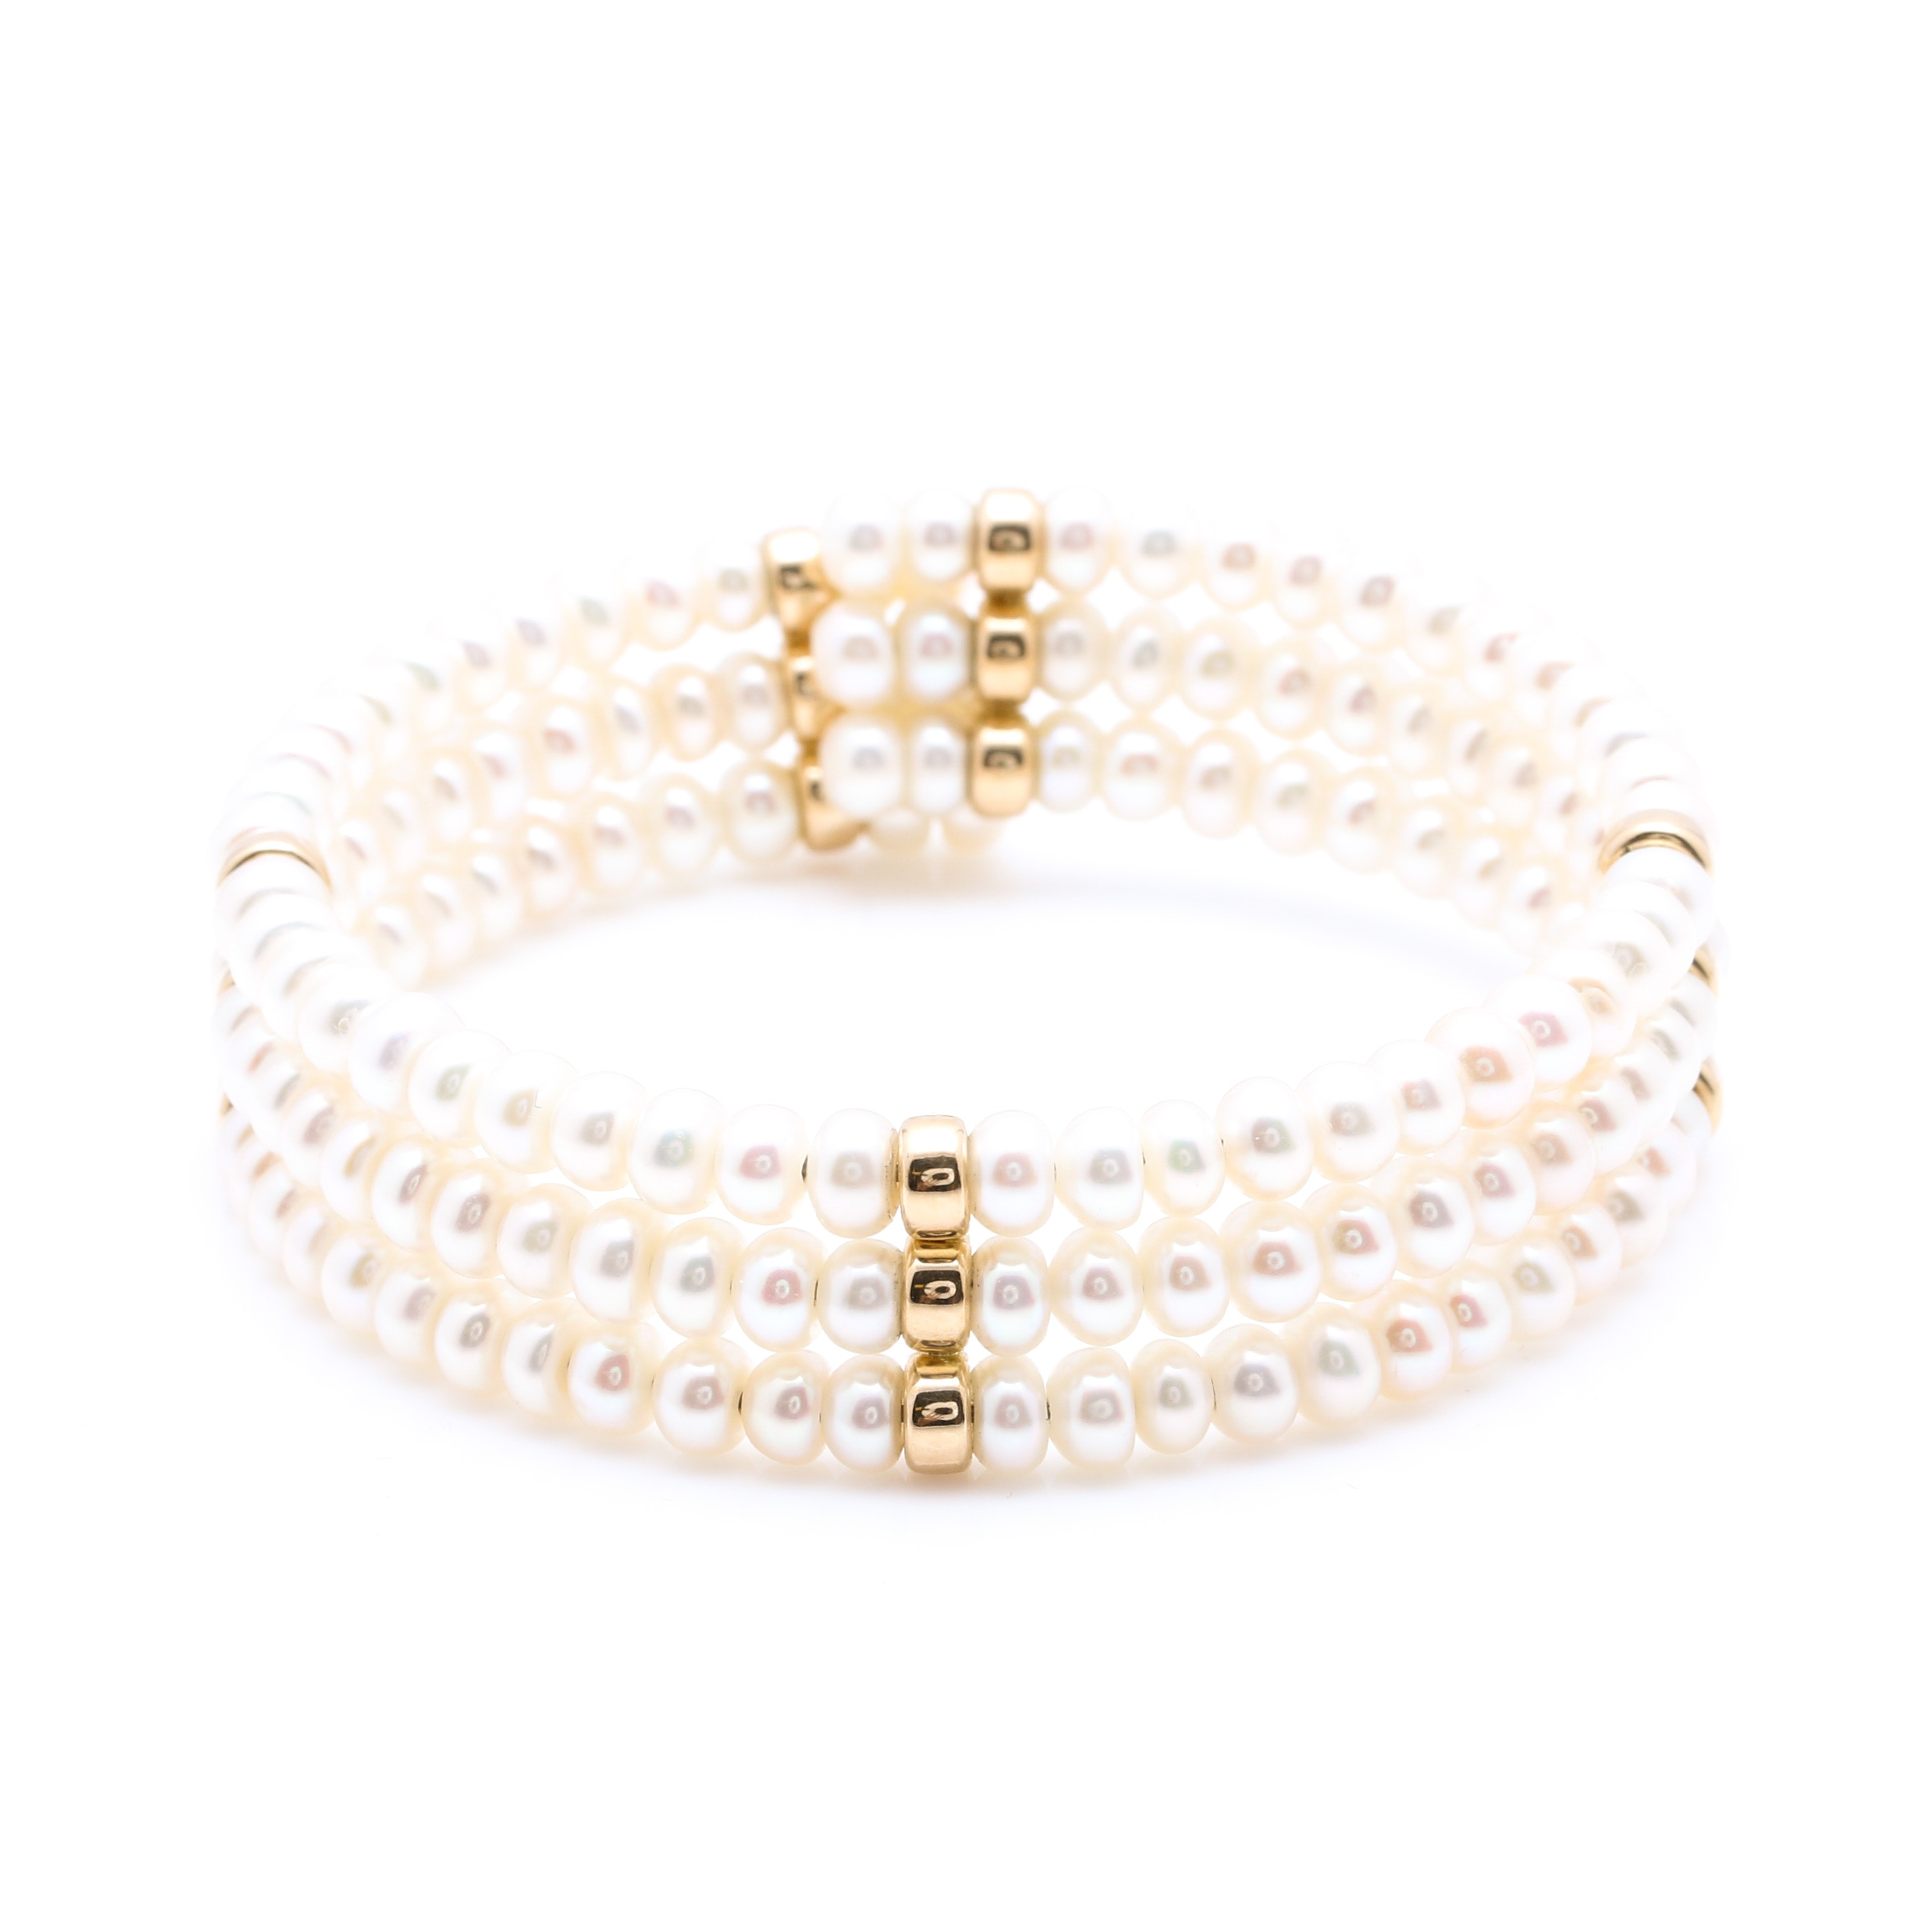 Cultured Pearl Bracelet with 14K Yellow Gold Accent Beads